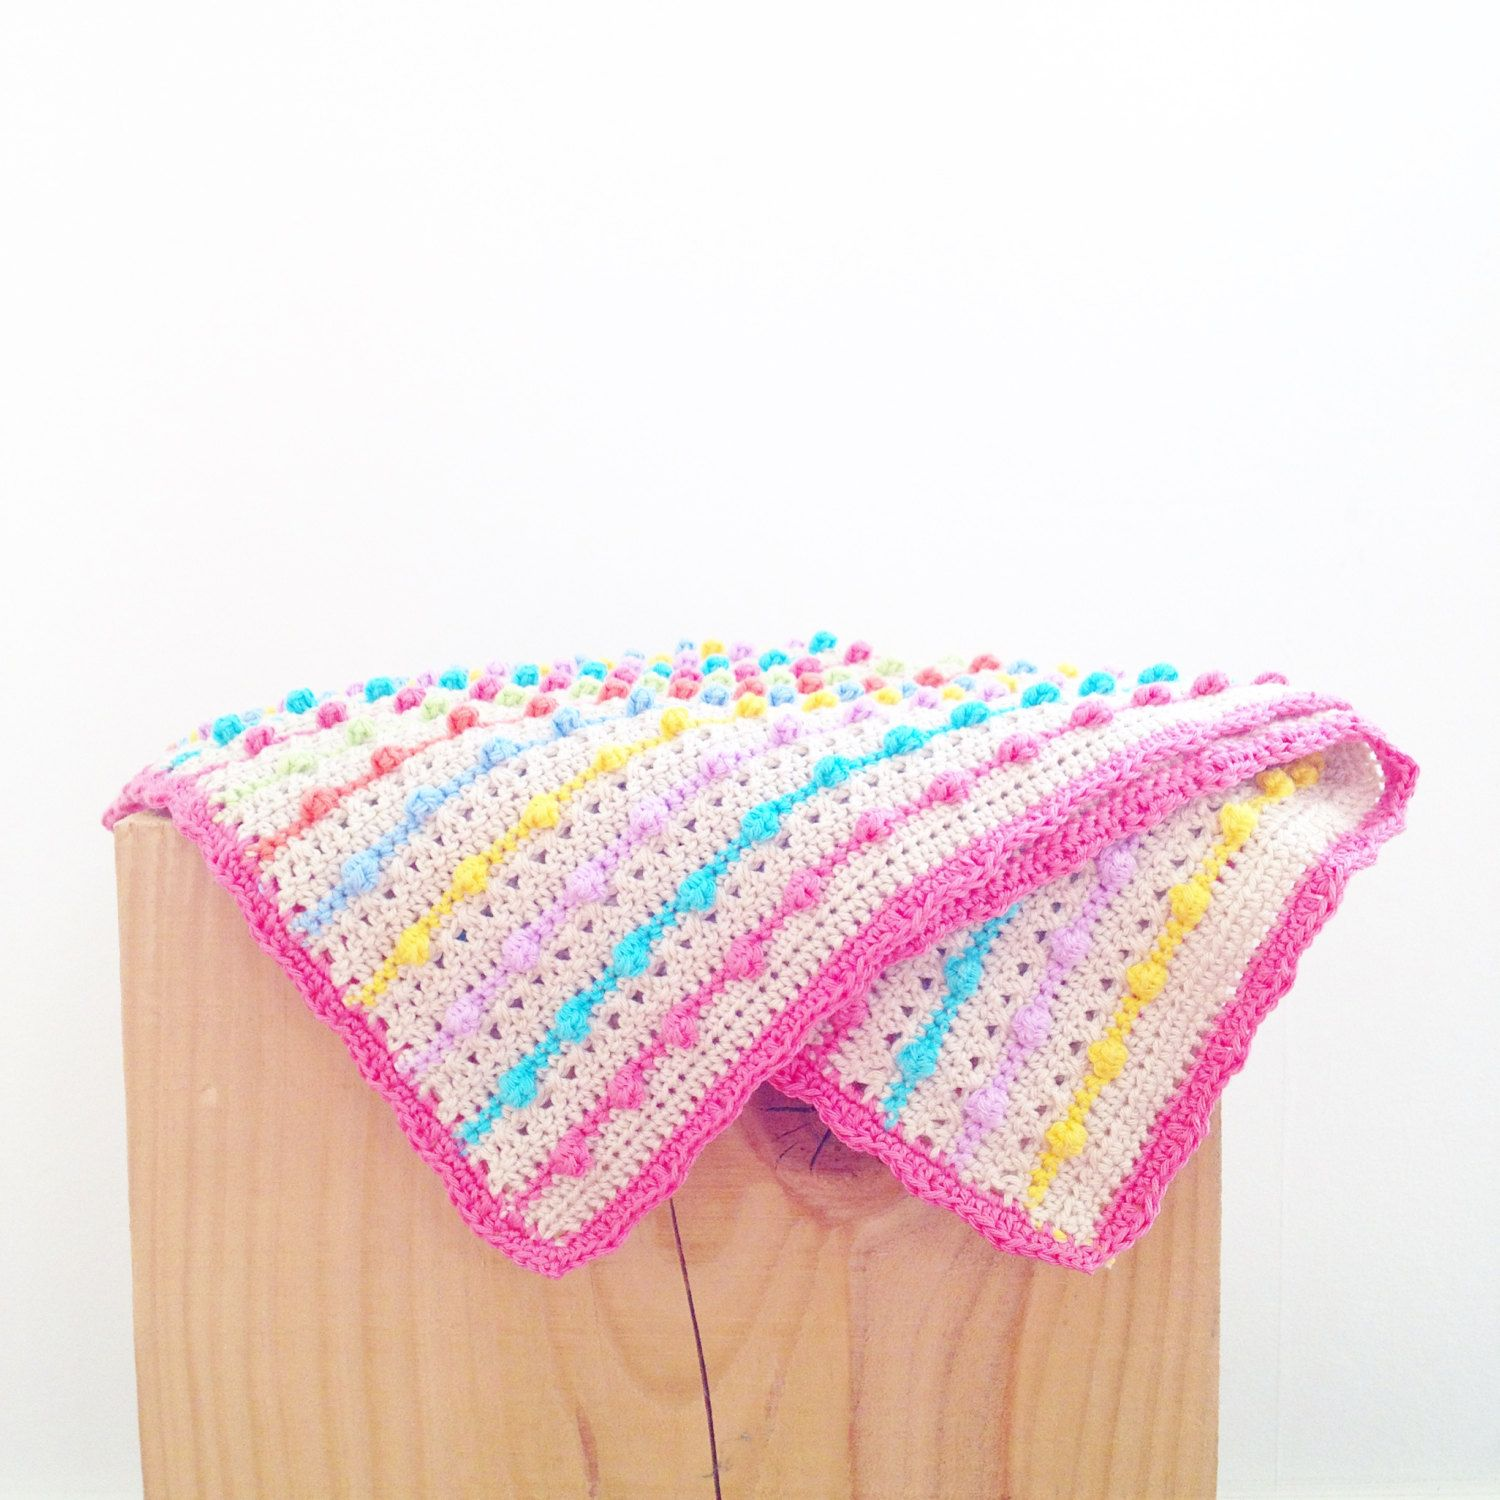 Crochet Bobble Stitch Blanket Pattern | MANDALA CROCHET GRANNYS ...